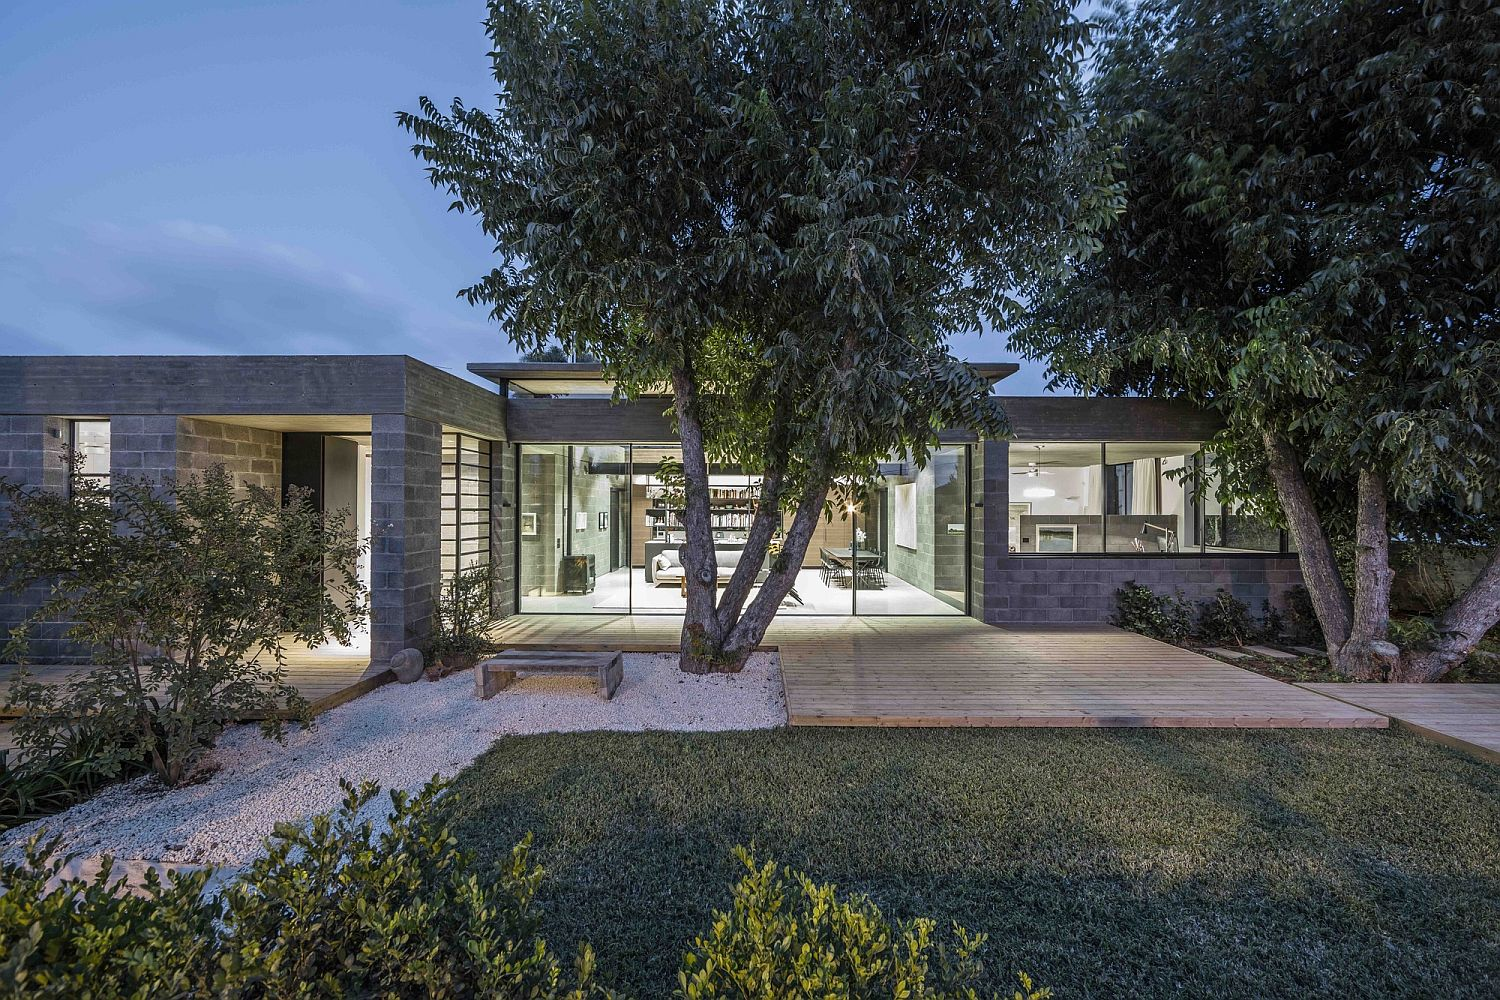 Large pecan nut trees become a part of the home's narrative